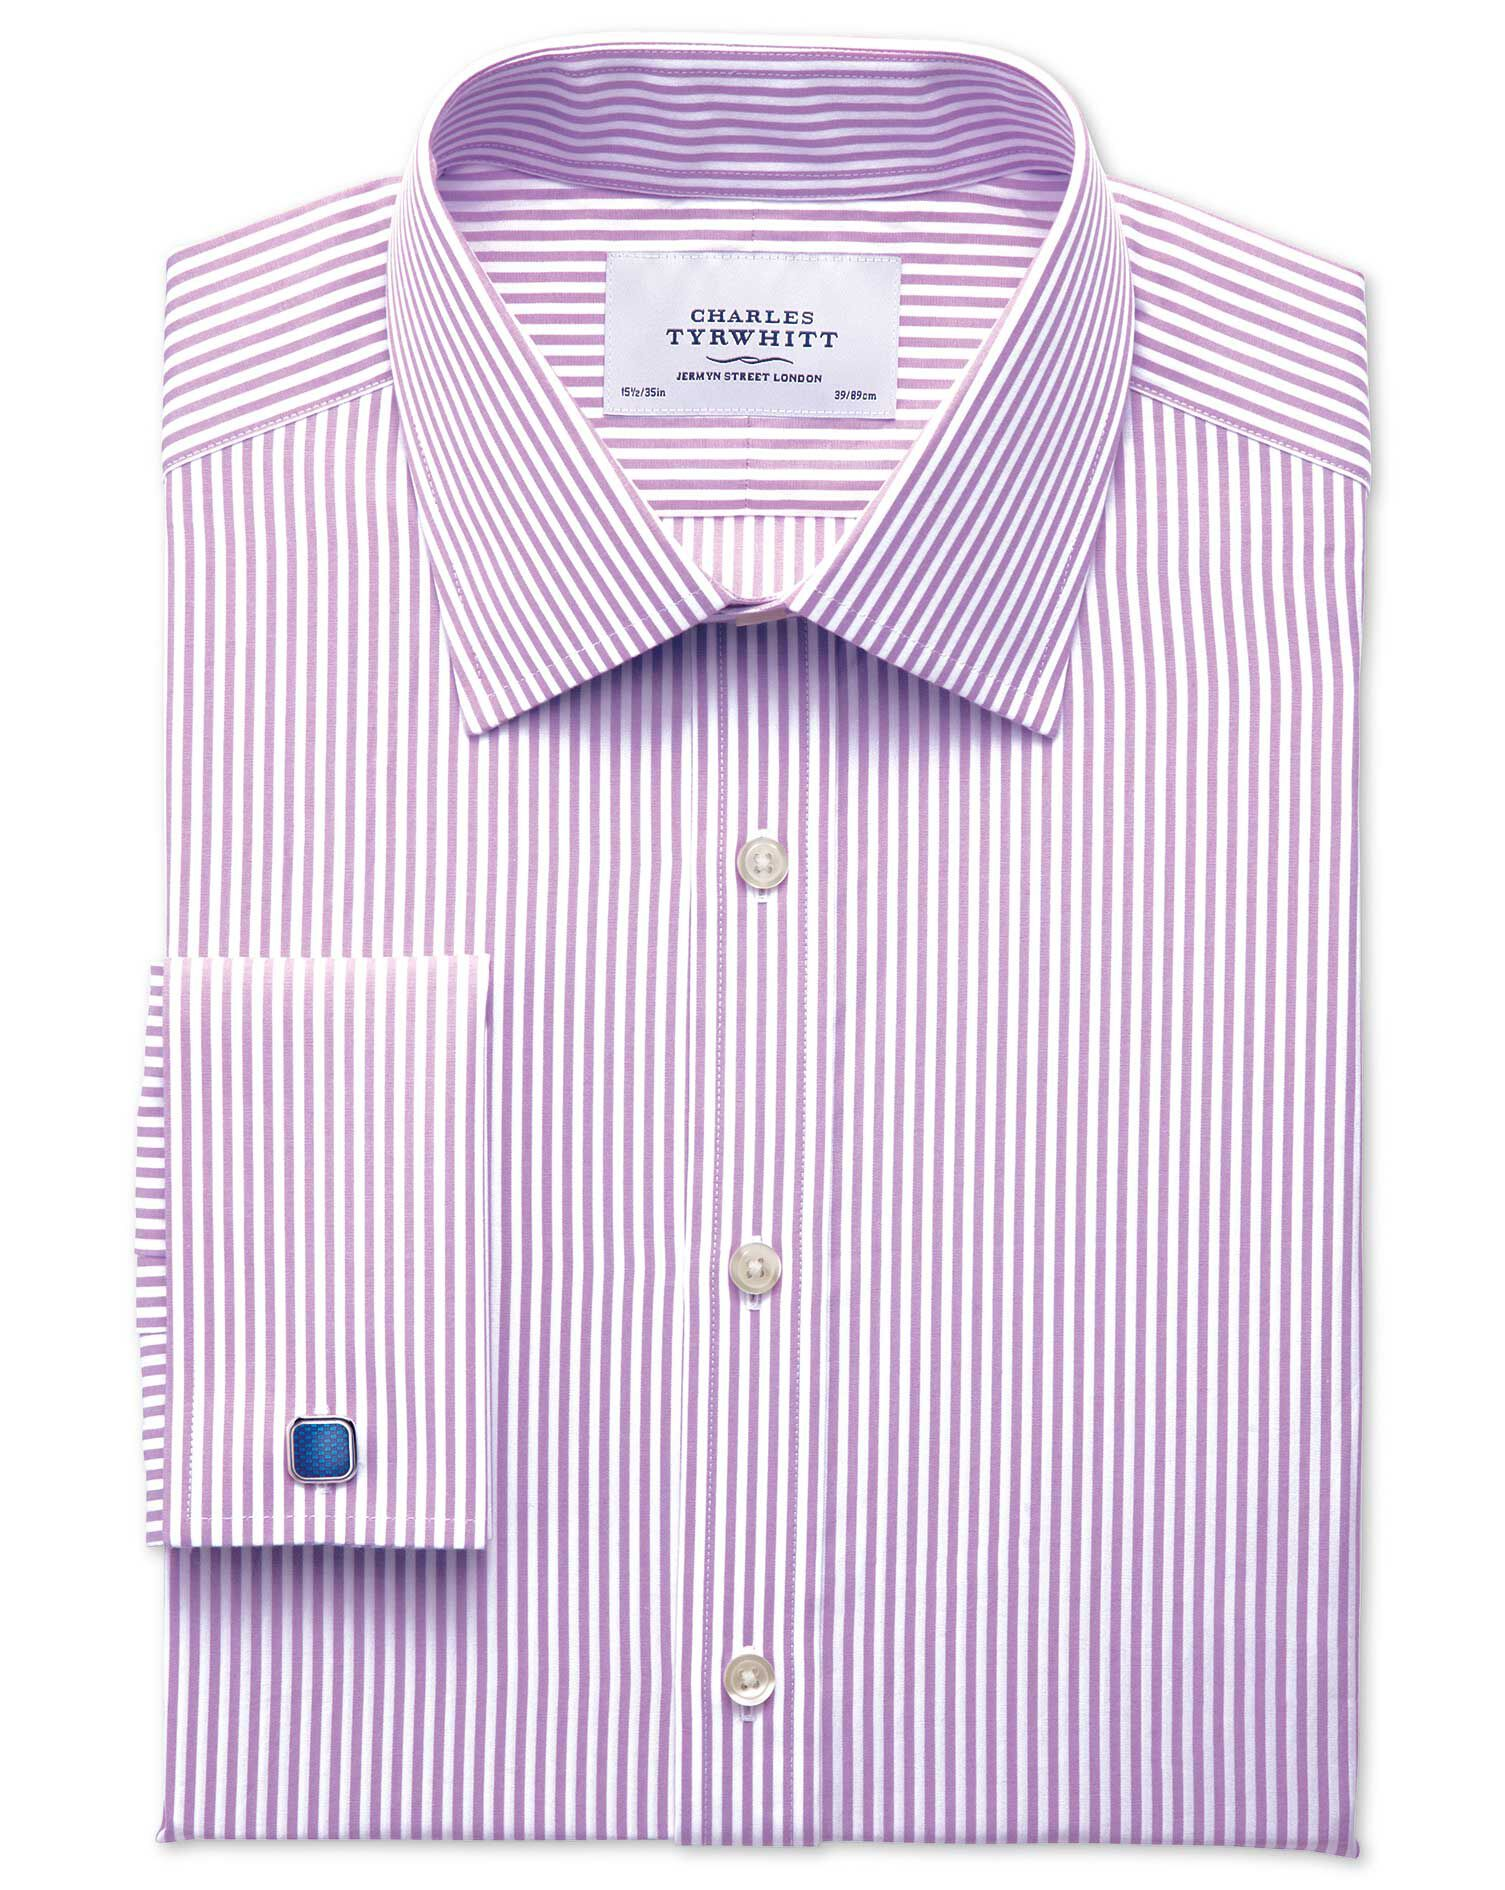 Extra Slim Fit Bengal Stripe Lilac Cotton Formal Shirt Single Cuff Size 16.5/36 by Charles Tyrwhitt